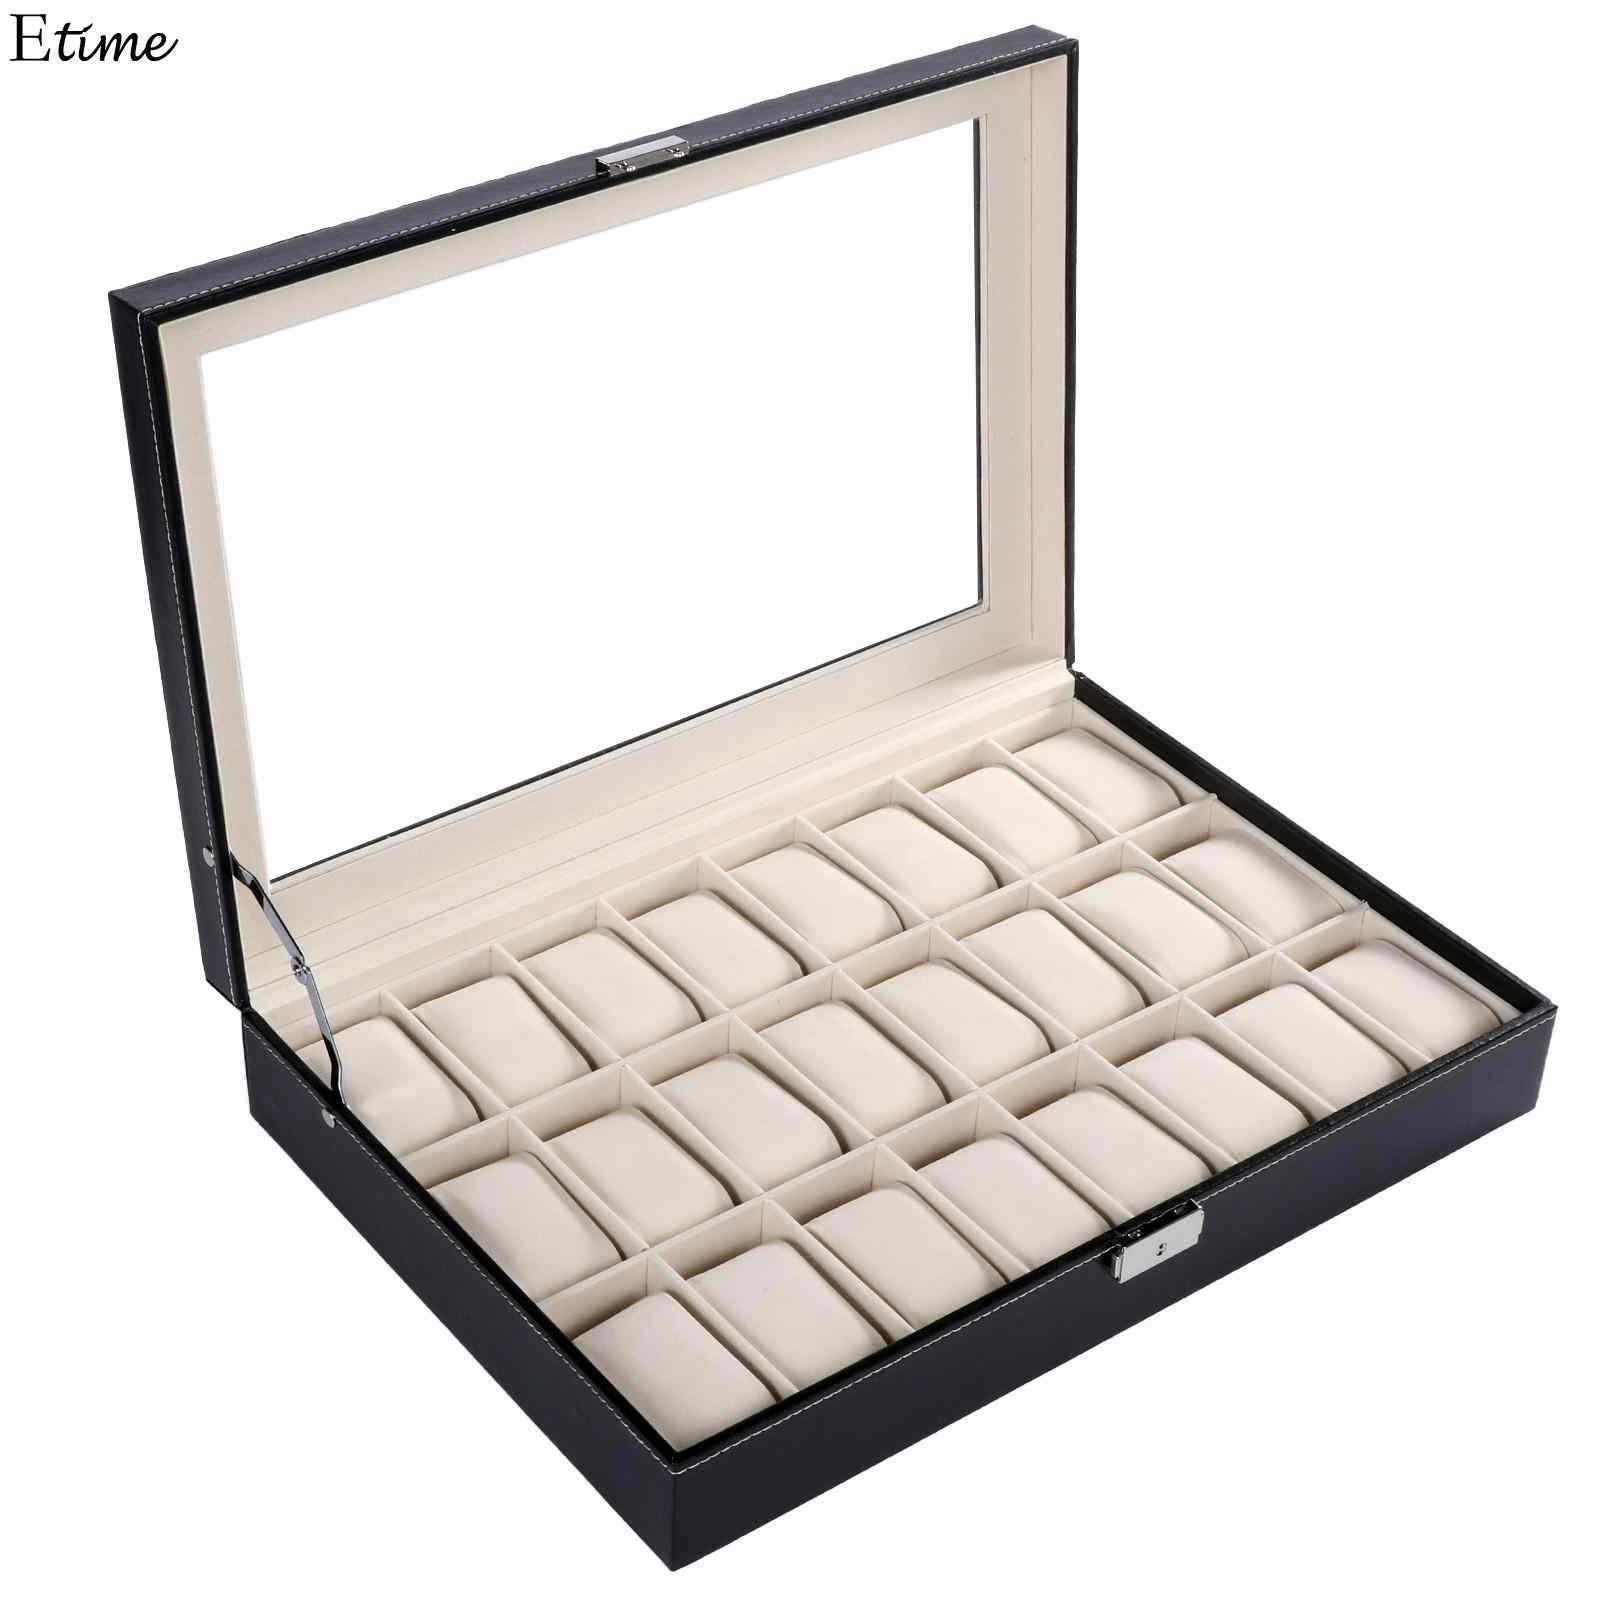 FANALA 24 Grid Watch Box PU Leather Watches Display Case Box Organizer Jewelry Storage Wrist Watches Lock Key Large Boite Montre